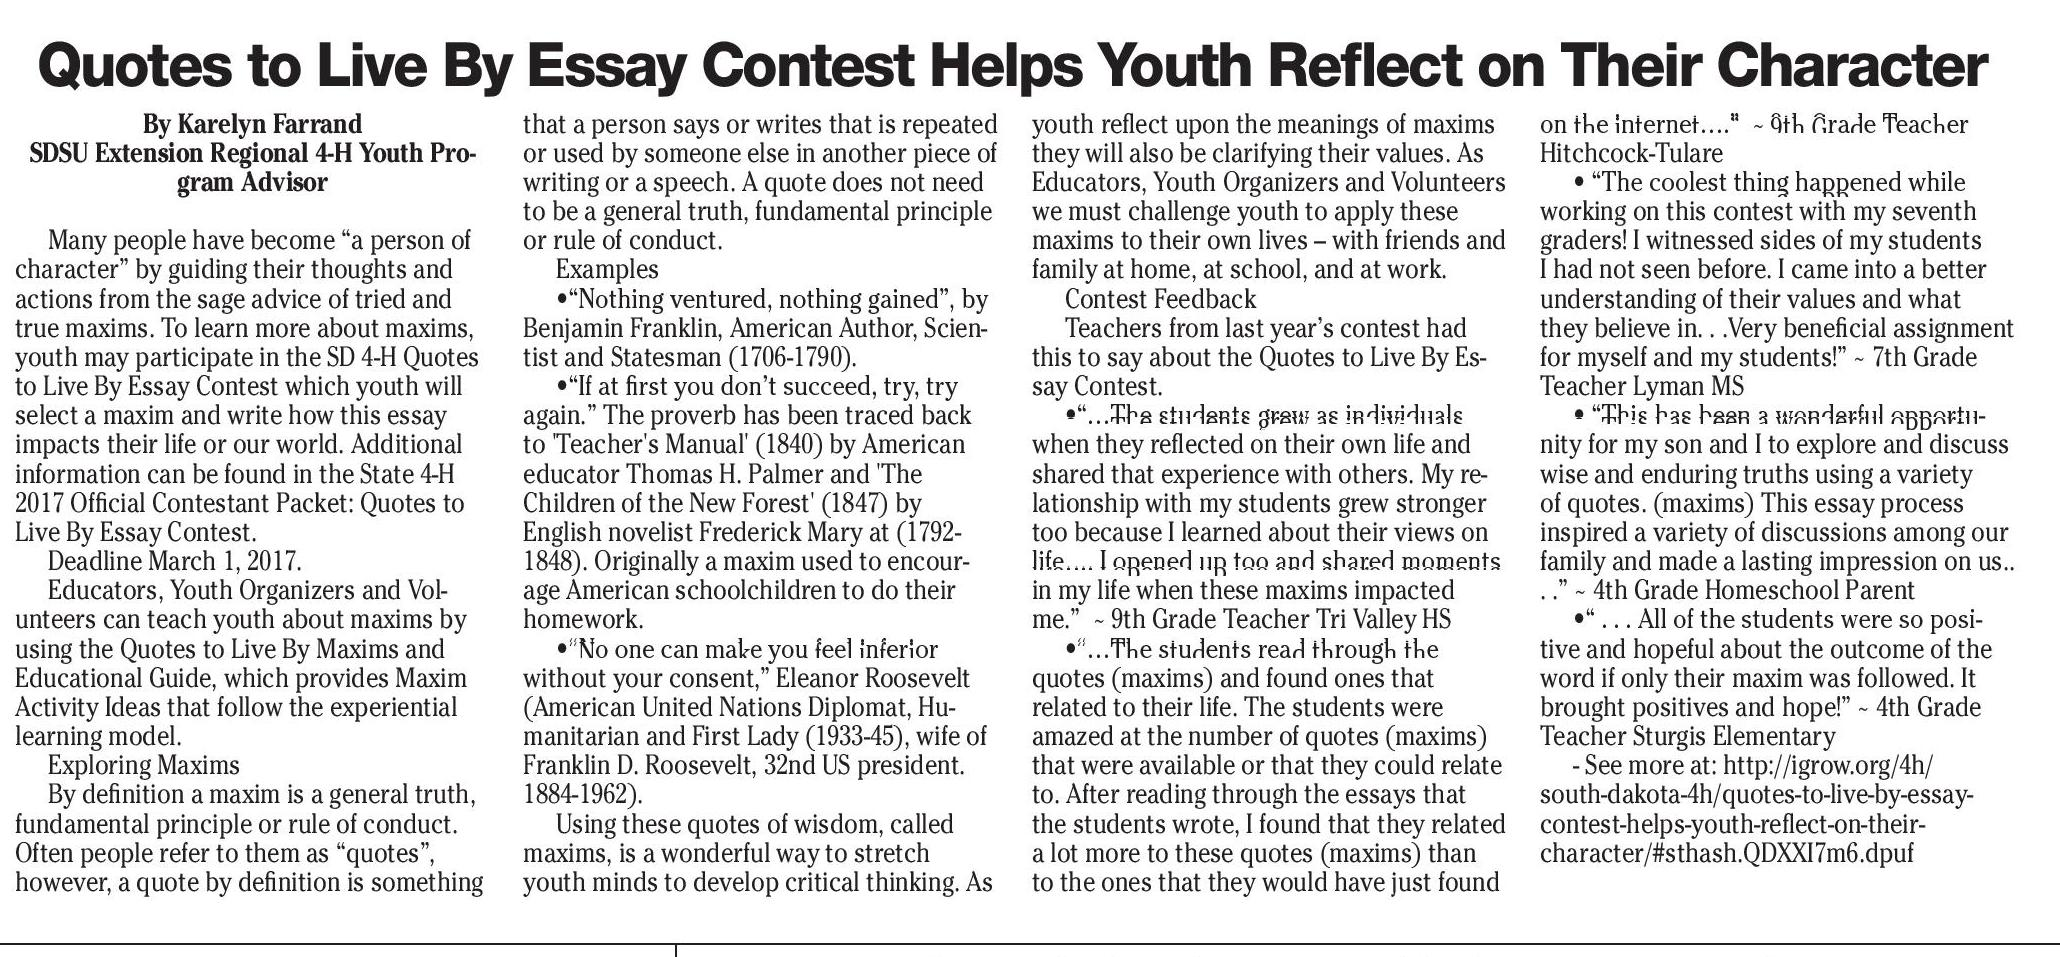 essay contests 7th graders 7th grade cesar chavez academy : leslie lerma 7th grade the entry period has ended for the 2017 poster & essay contest for more information on this contest.